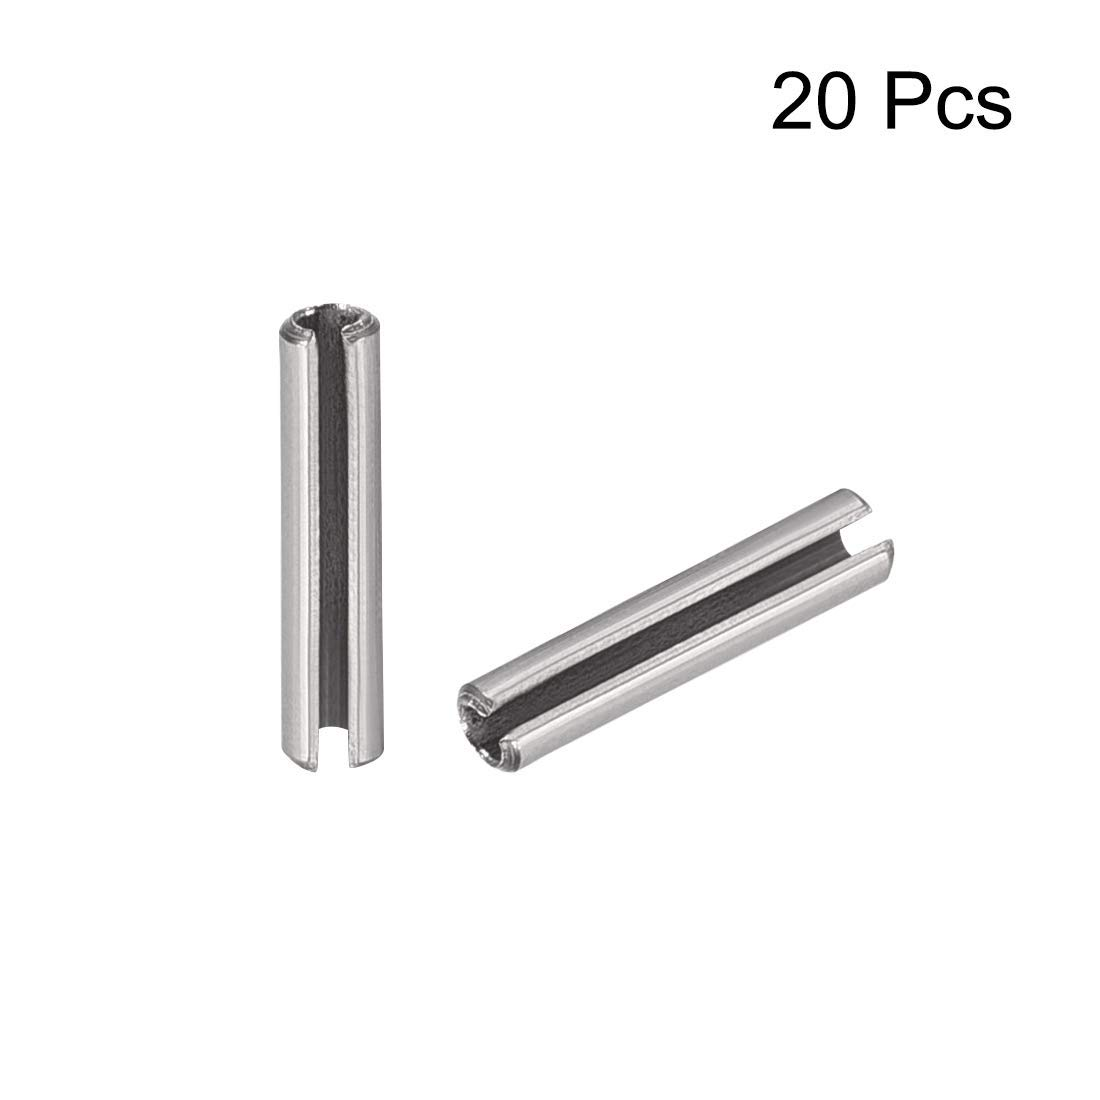 M1.5 x 6 mm 304 Stainless Steel Split Spring pin Pins Plain pin 20 Pieces Slotted Spring pin